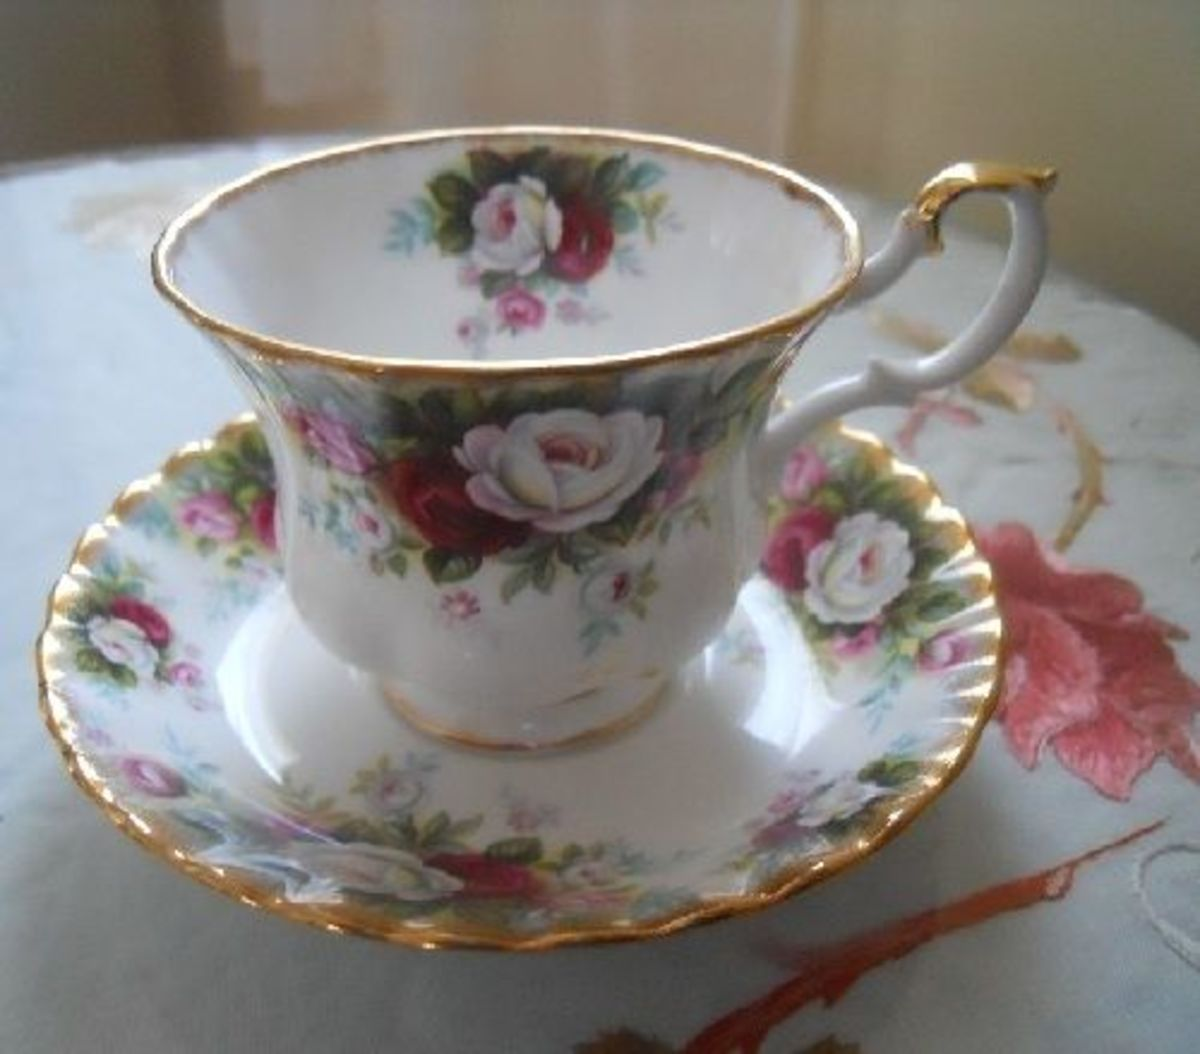 Royal-Albert-Celebration-teacup